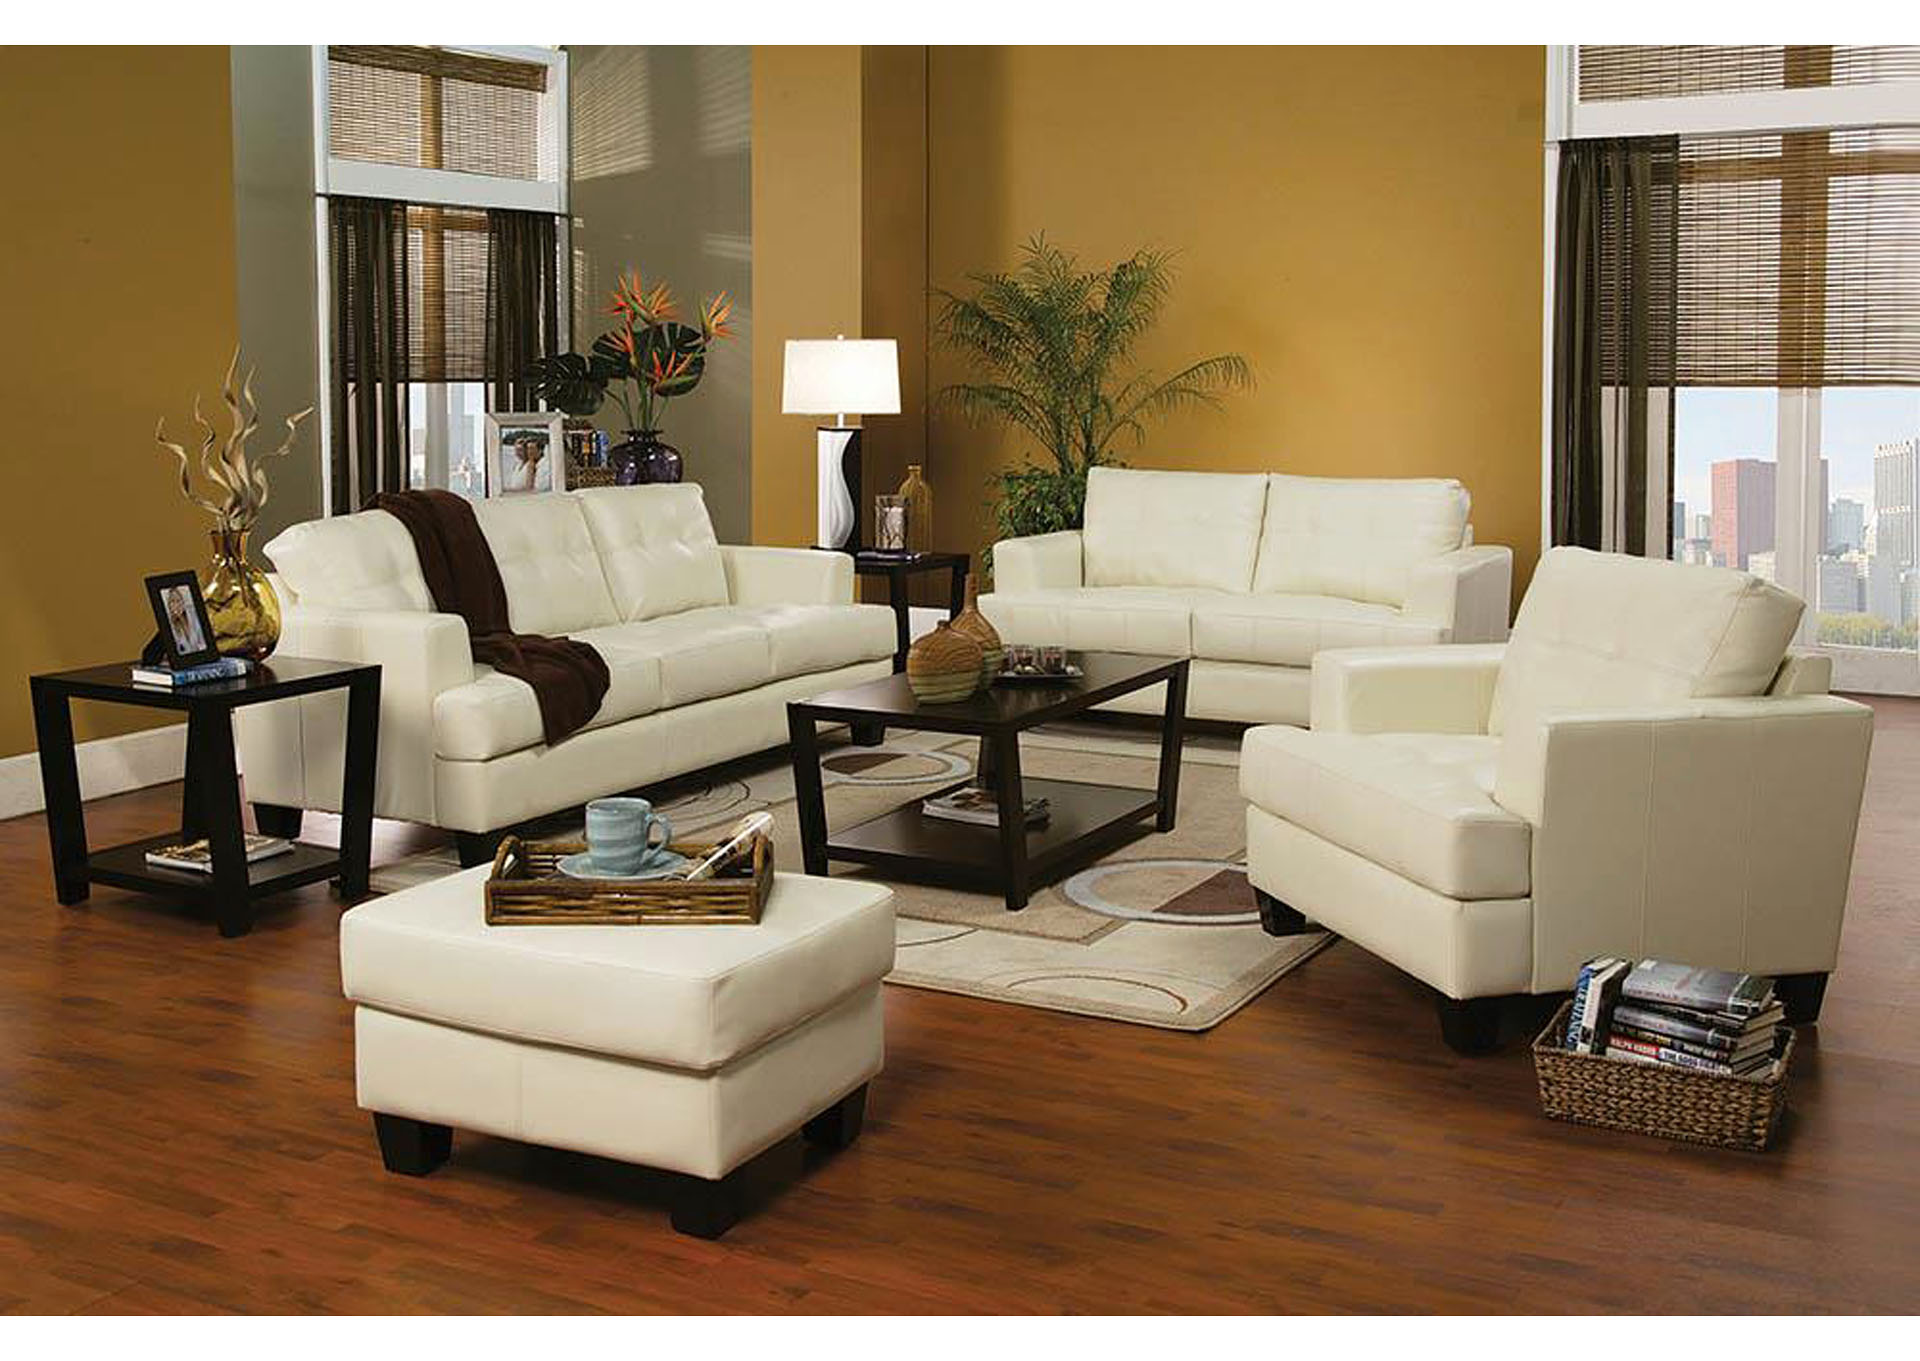 Samuel Cream Bonded Leather Love Seat,ABF Coaster Furniture